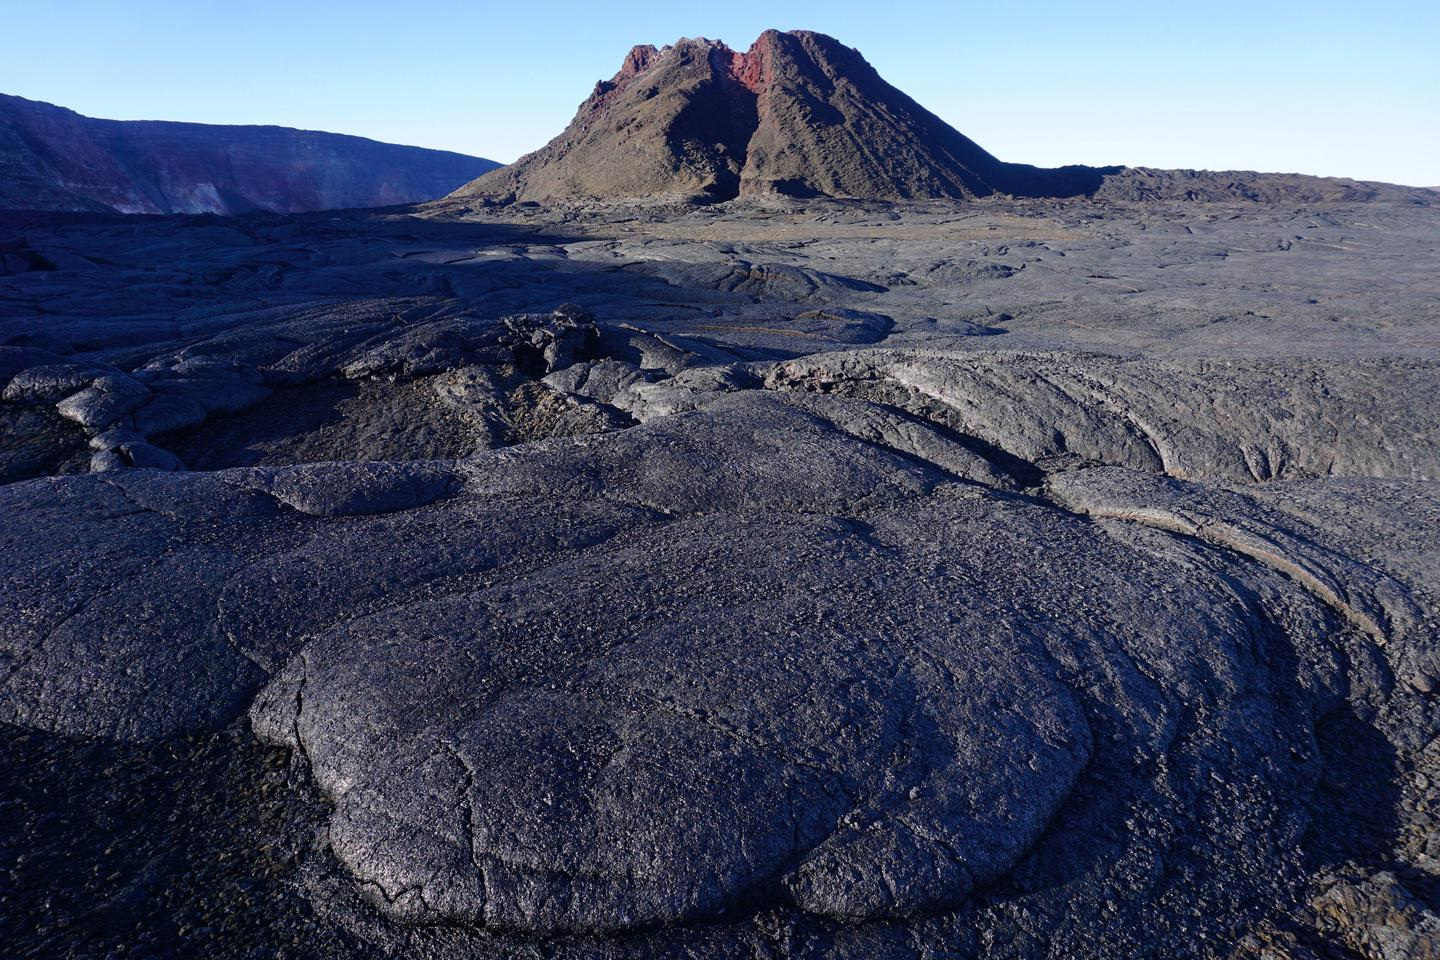 Mauna Loa 1940 ConeMauna Loa, the largest active volcano on the planet, stands more than 13,000 feet above sea level